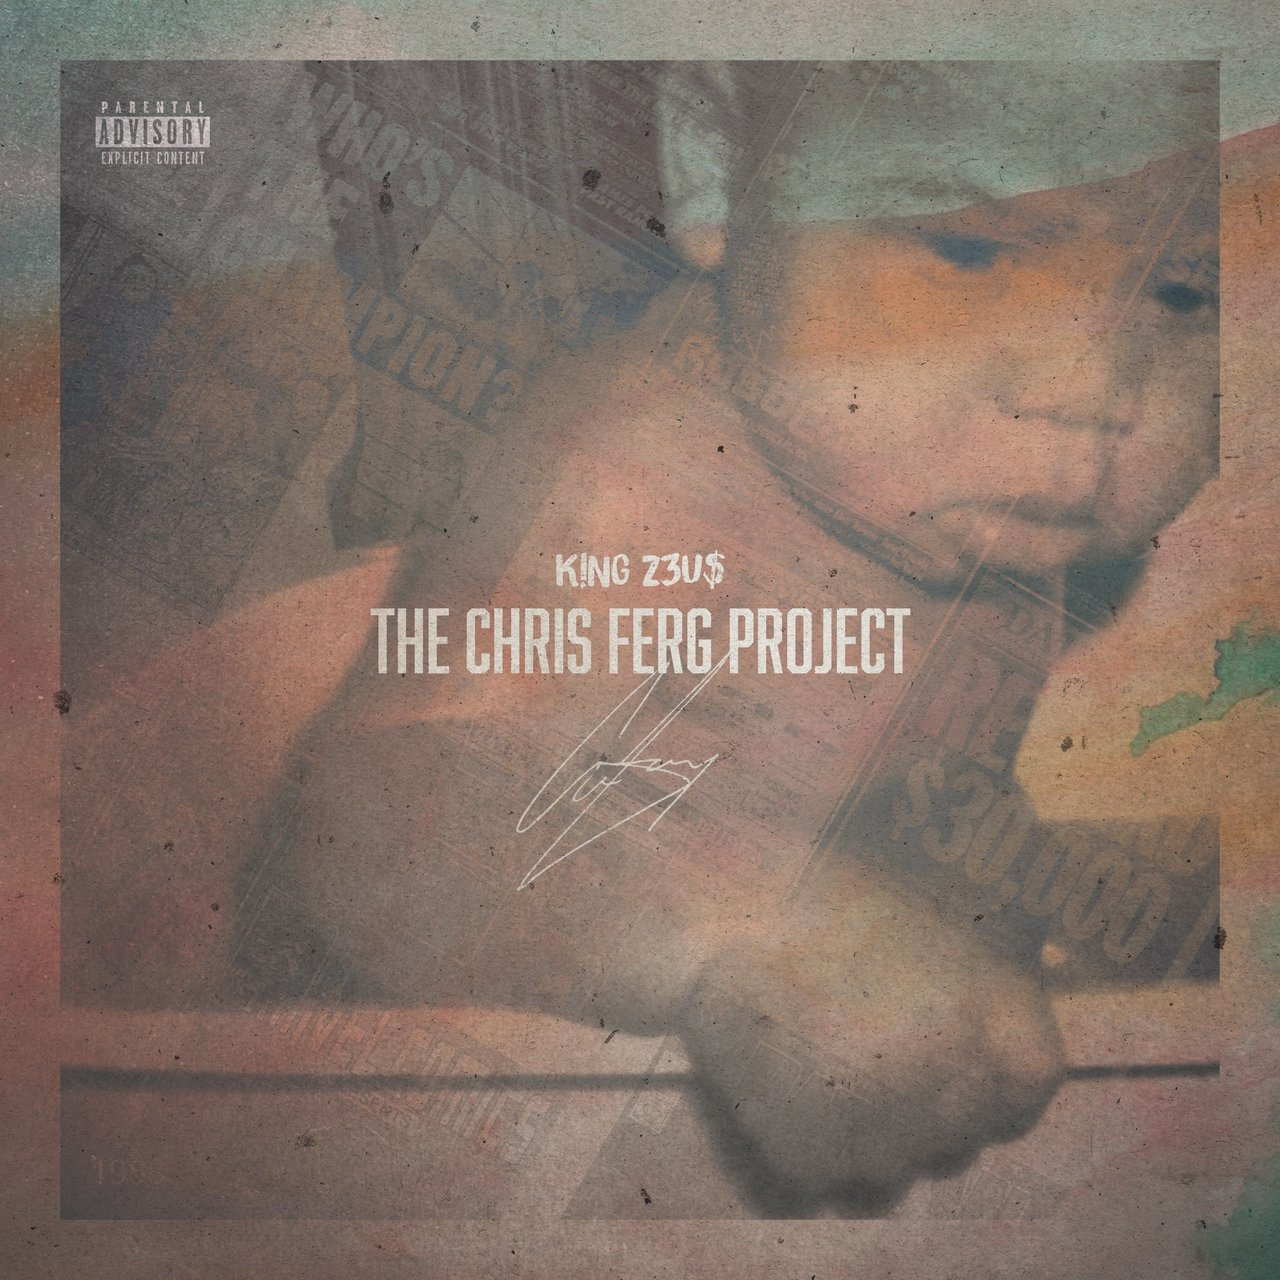 The Chris Ferg Project